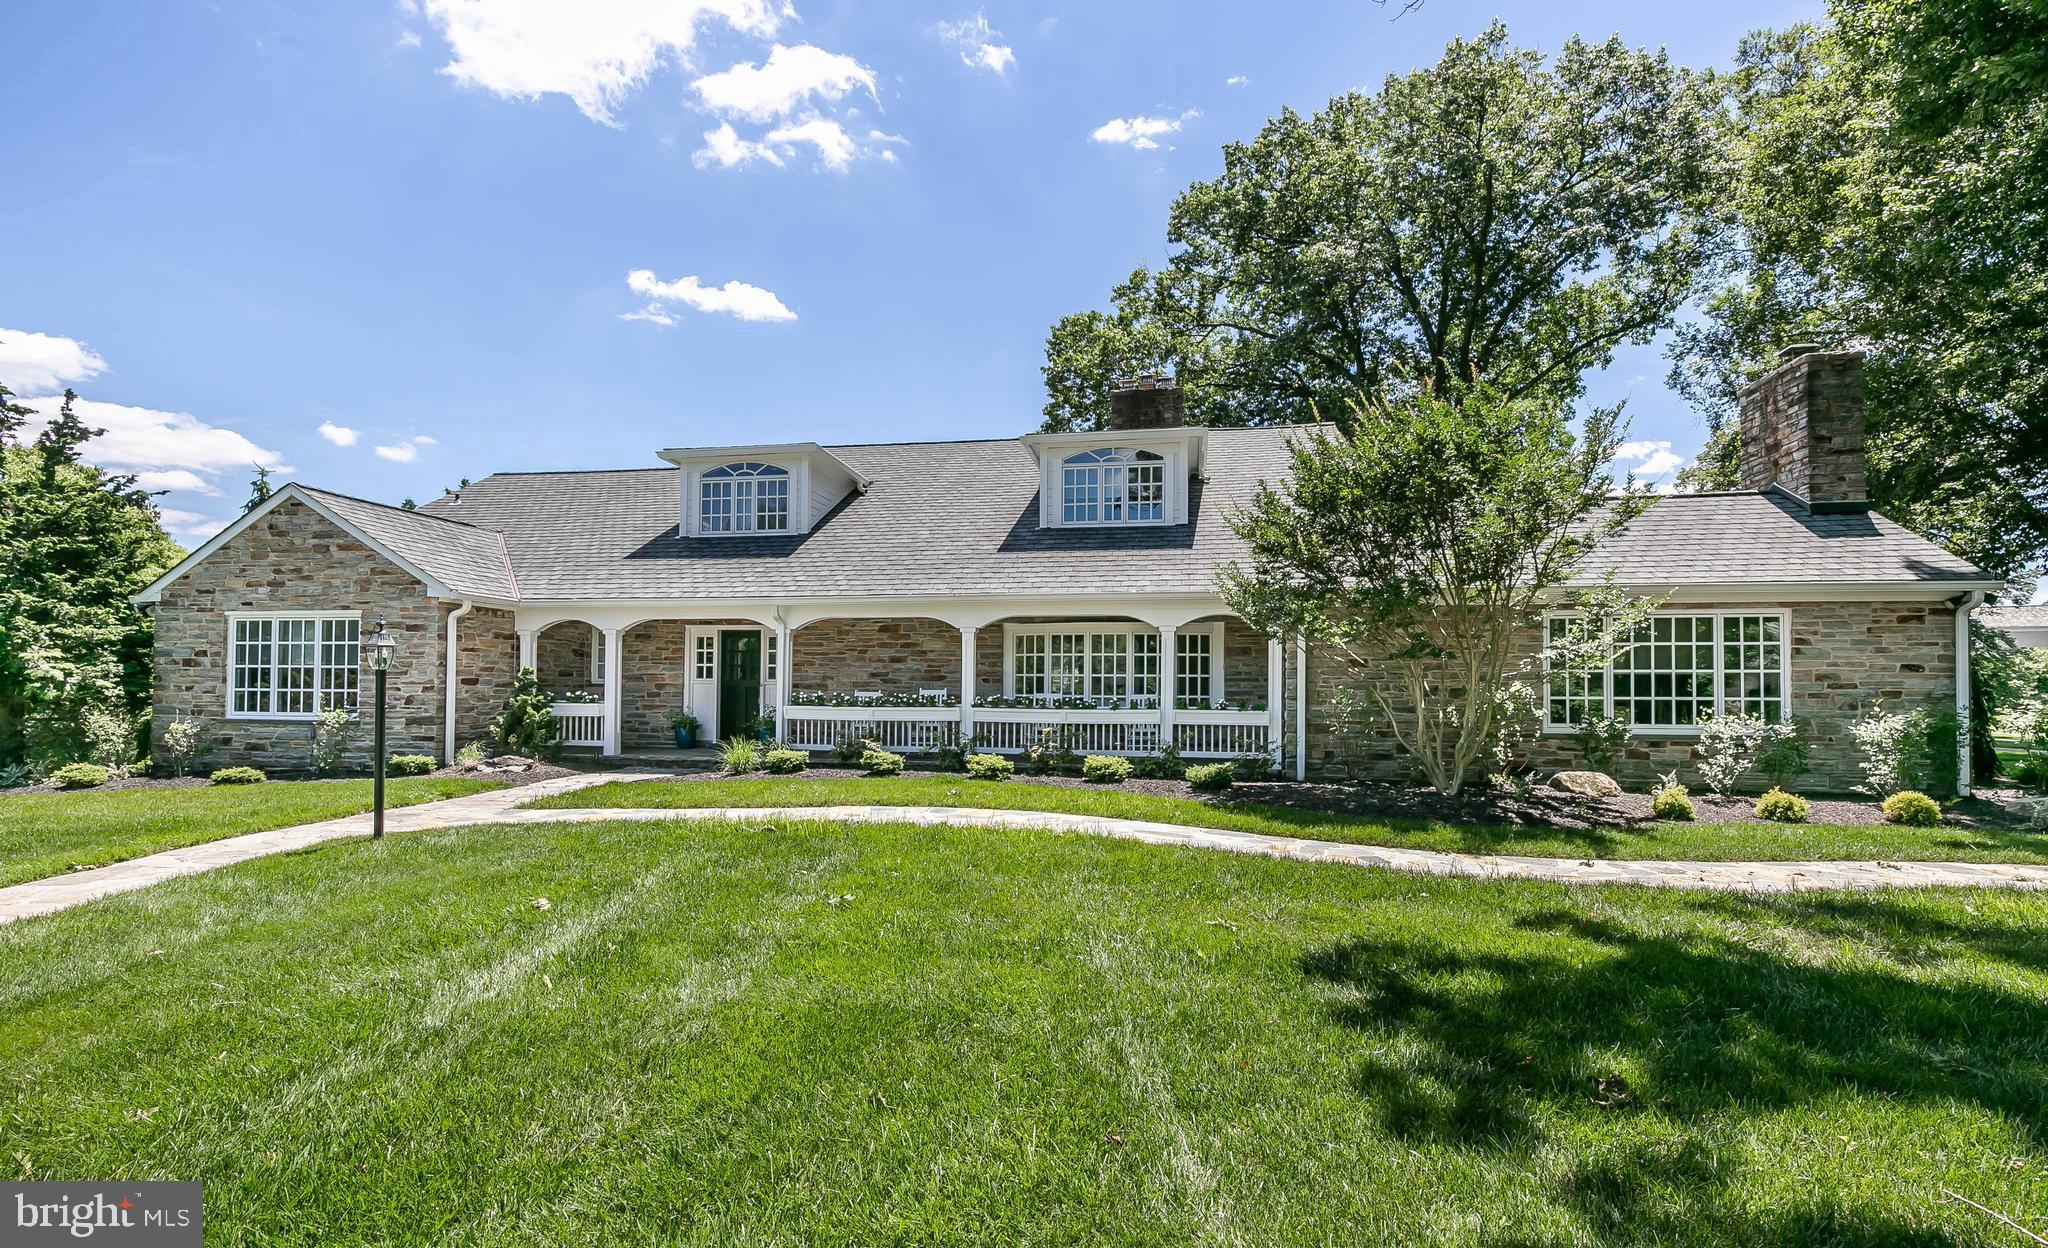 811 HILLSTEAD DRIVE, LUTHERVILLE TIMONIUM, MD 21093